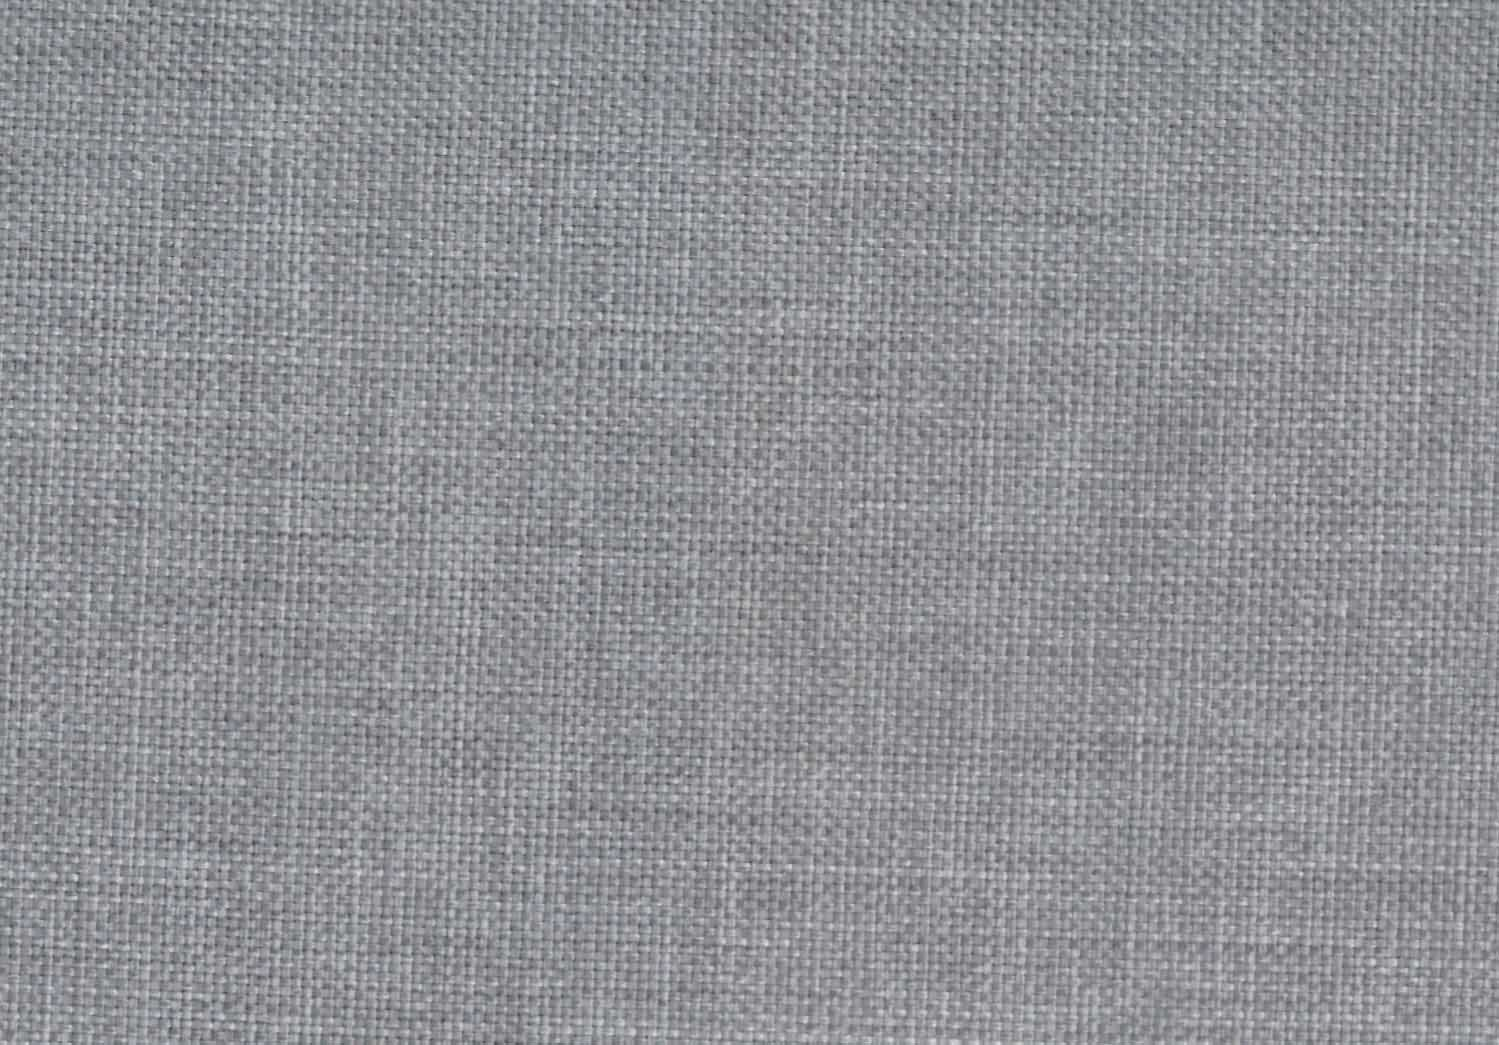 Ipod Pillow Grey Linen Wallpaper Wallpapersafari